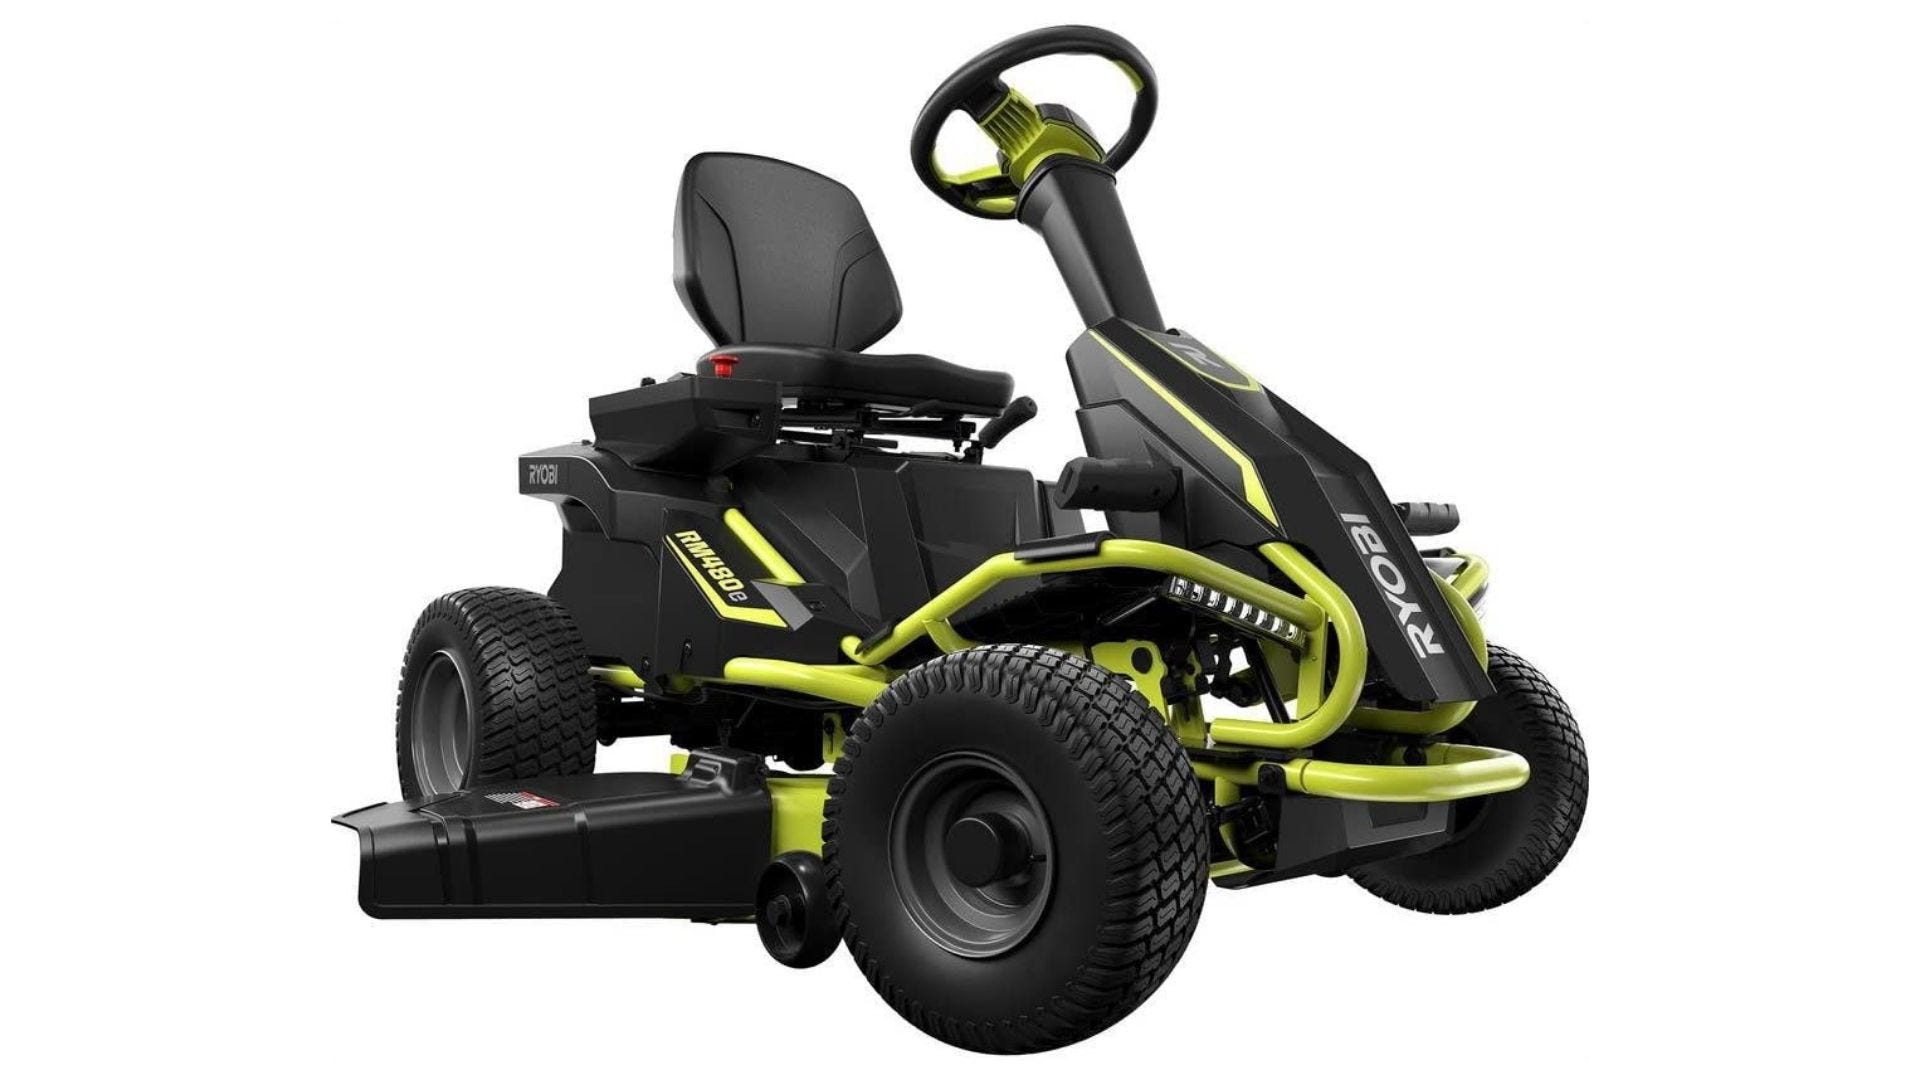 RYOBI 48V Brushless 38 in. 100 Ah Battery Electric Rear Engine Riding Lawn Mower